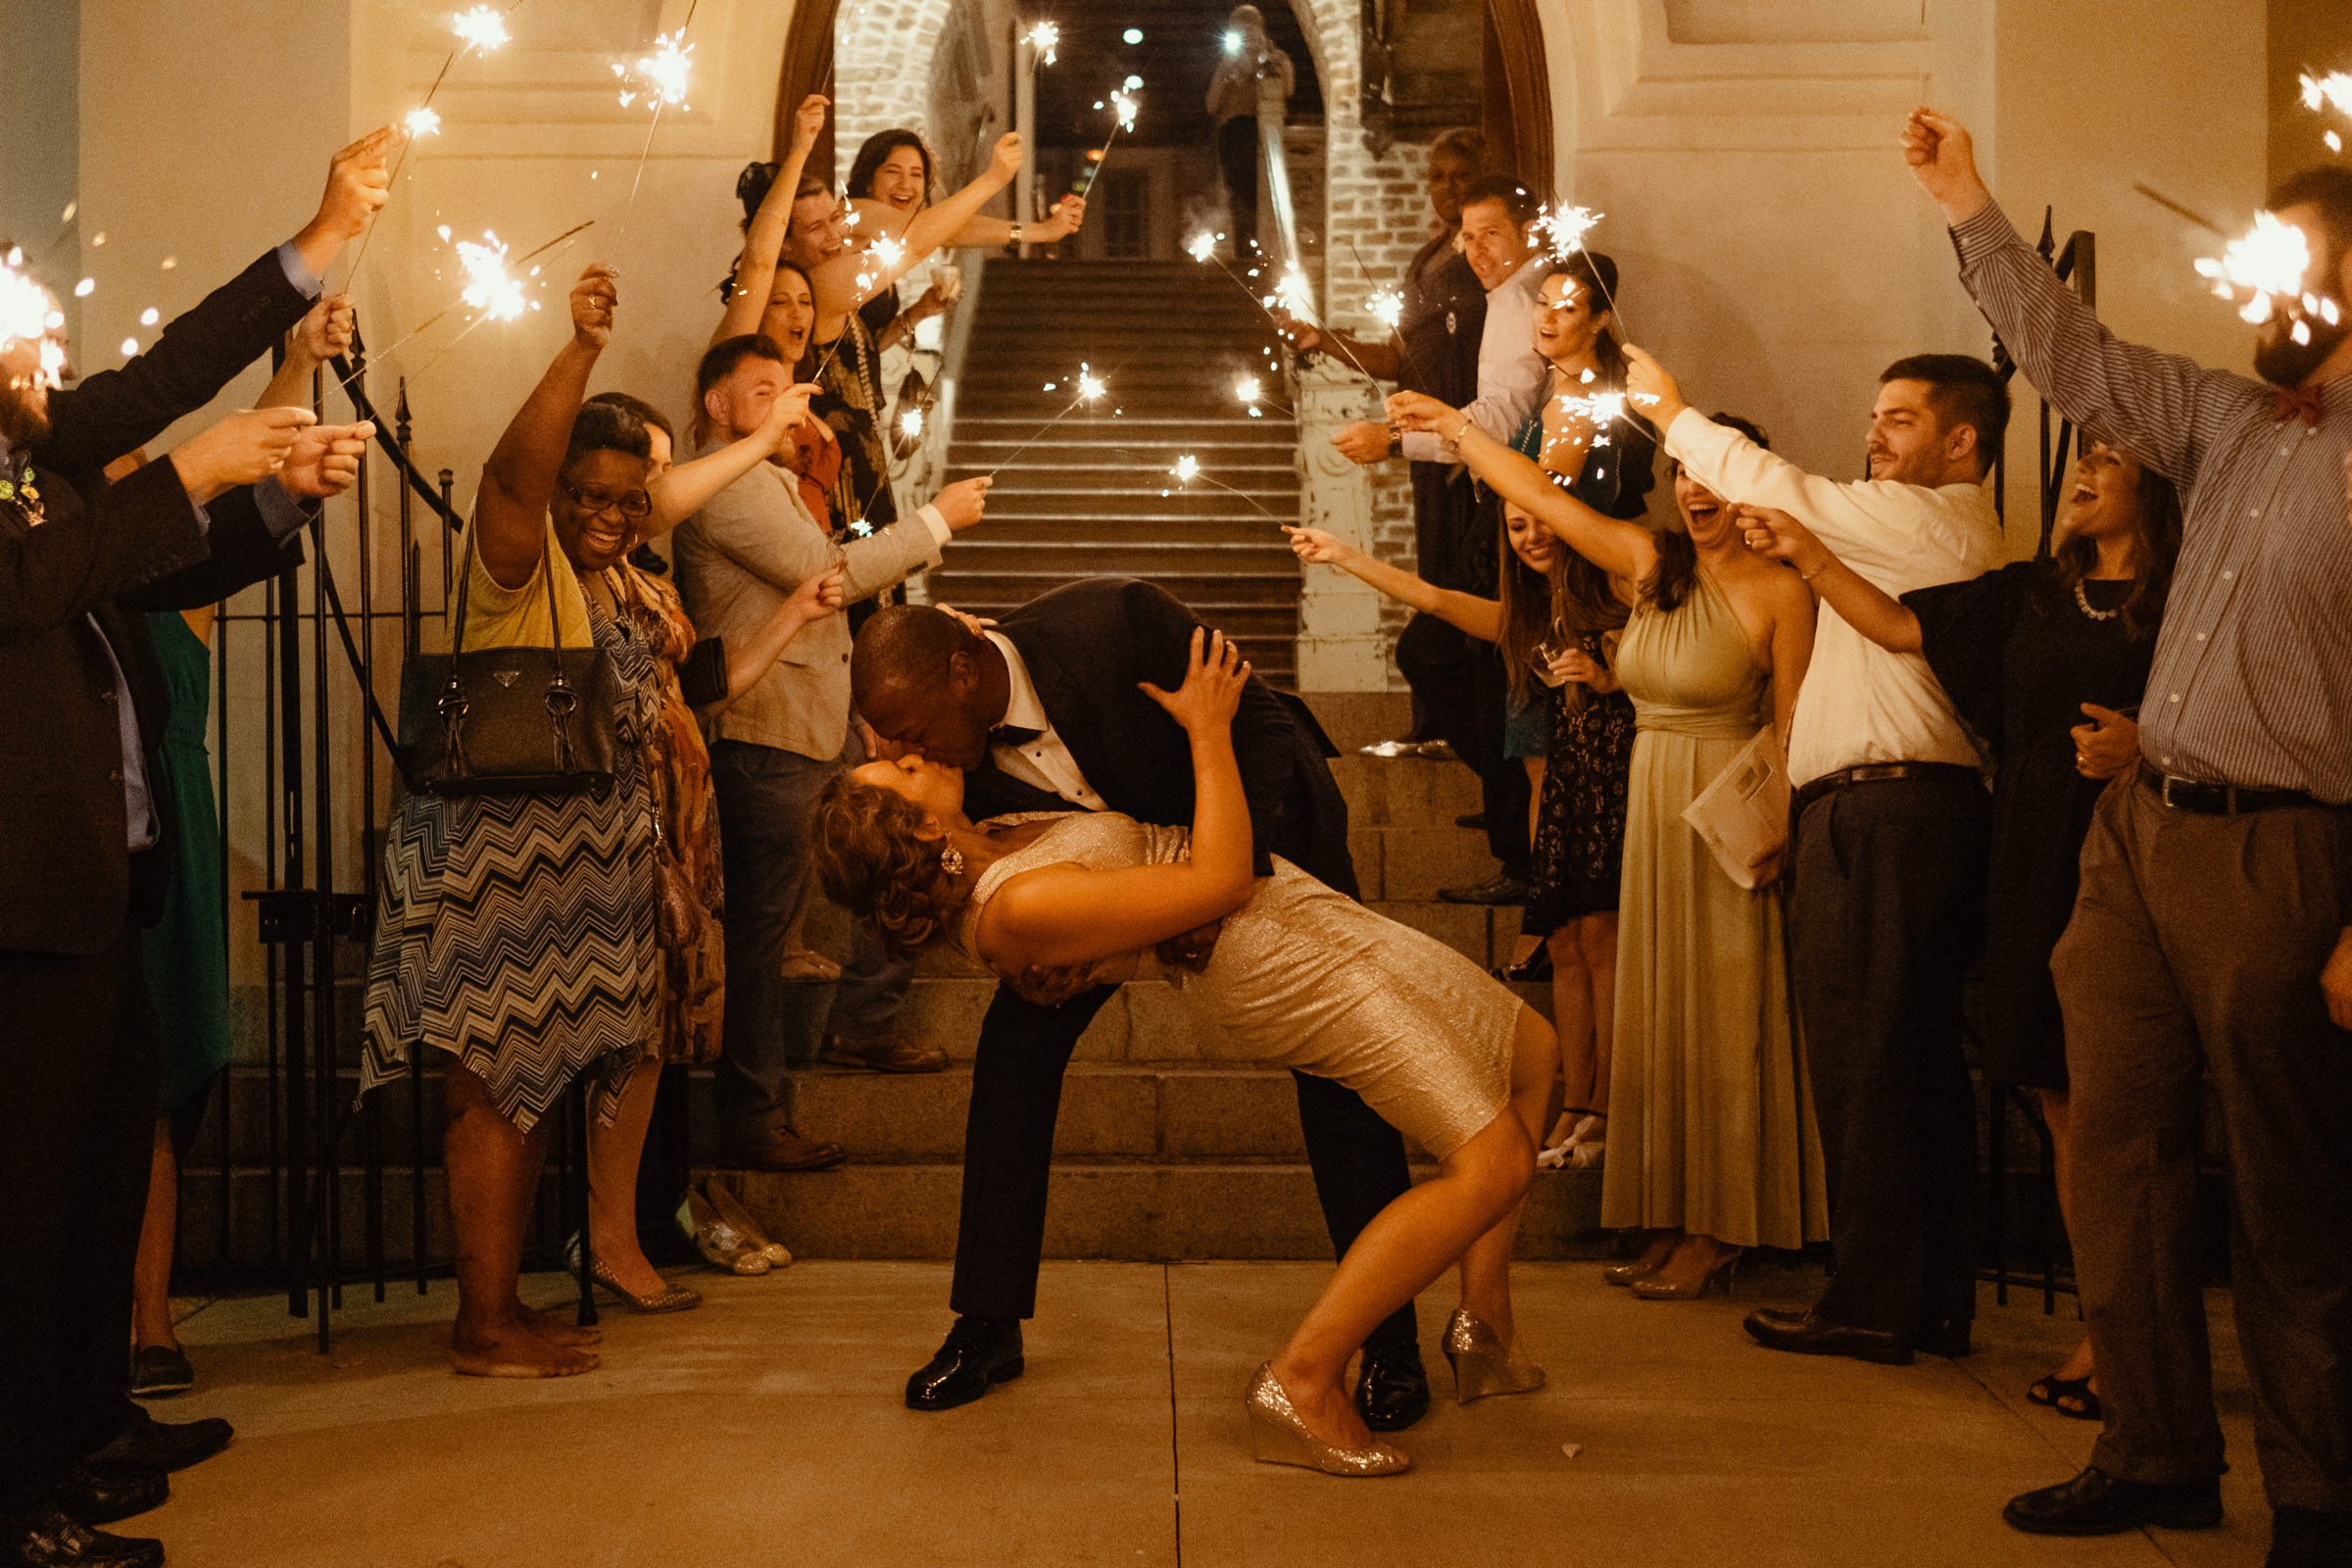 bride and groom exiting reception under sparklers-new orleans-austin-houston-wedding photographer- photo by Dark Roux